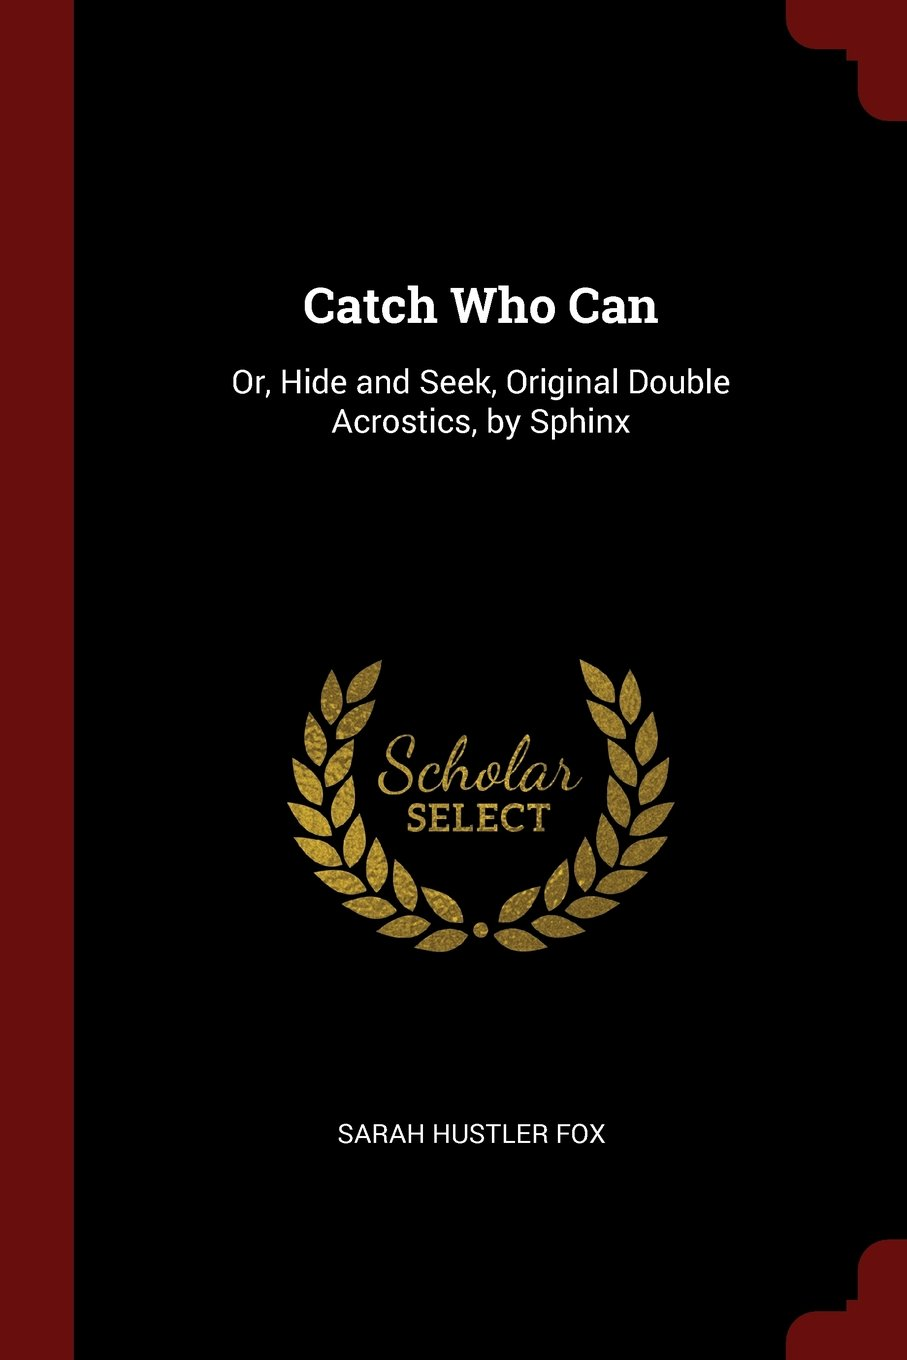 Catch Who Can: Or, Hide and Seek, Original Double Acrostics, by Sphinx ebook